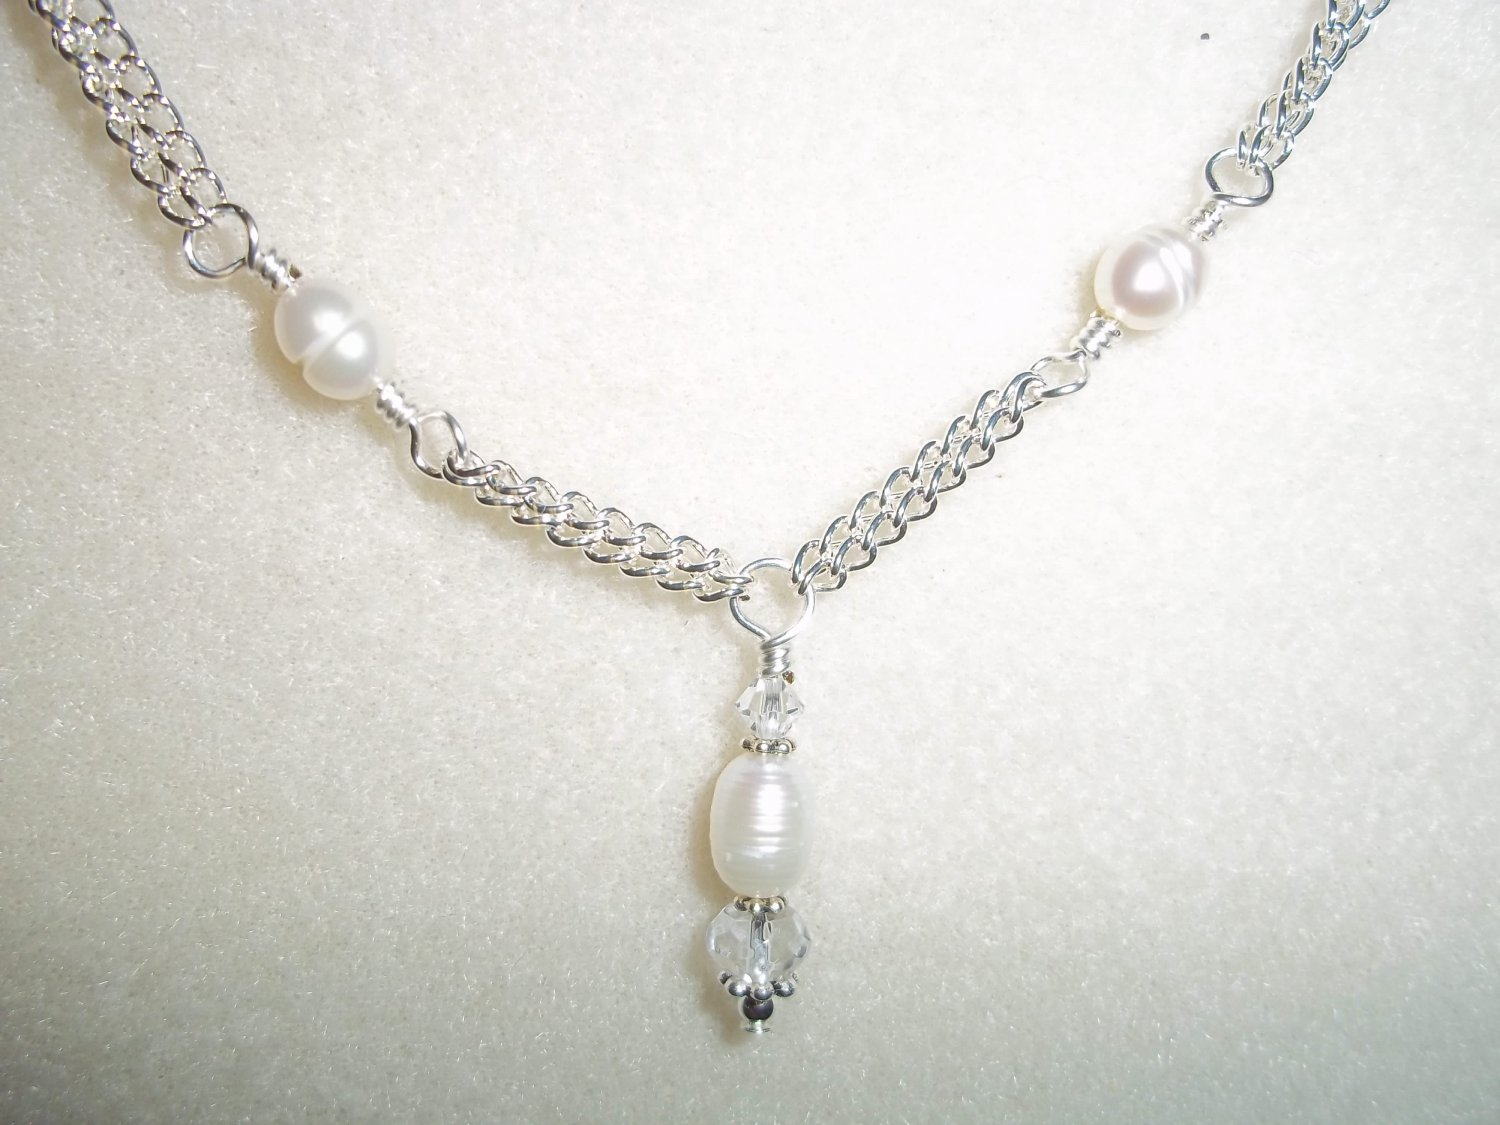 Handmade Silver & Pearl Bridal Necklace